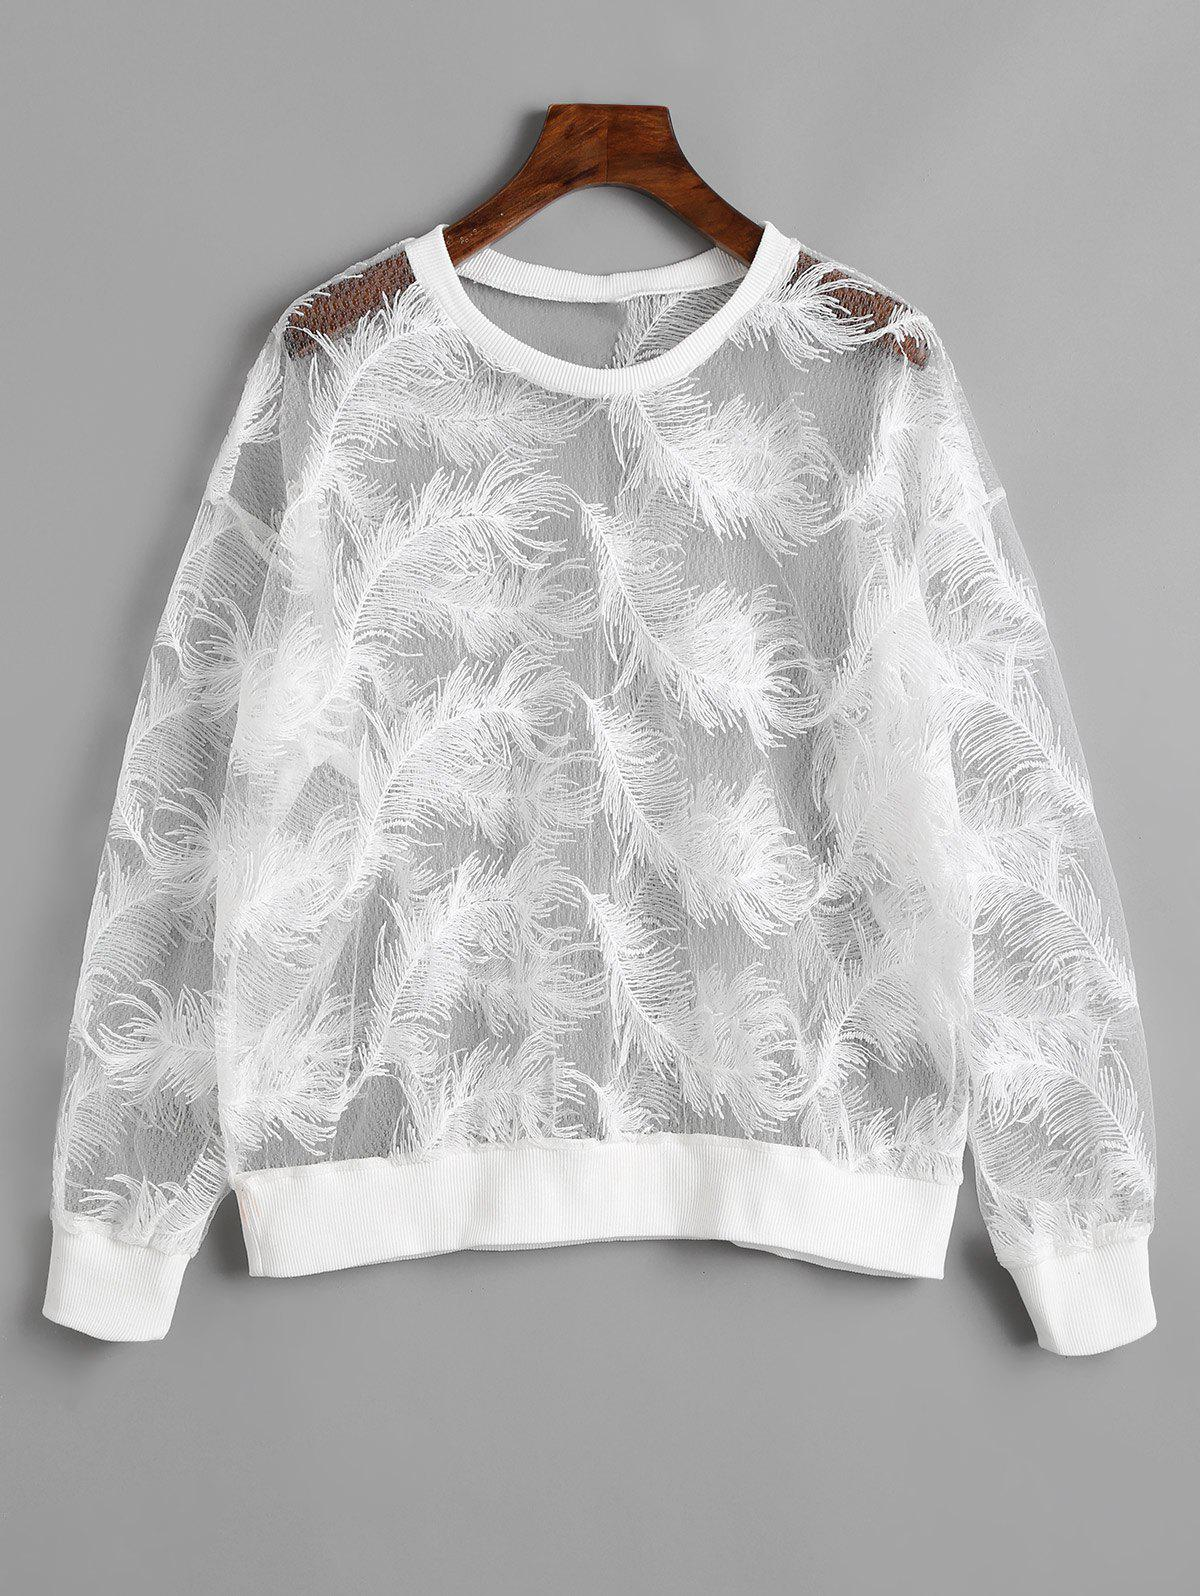 See Through Feather Sweatshirt feather print asymmetrical cuff see through kimono